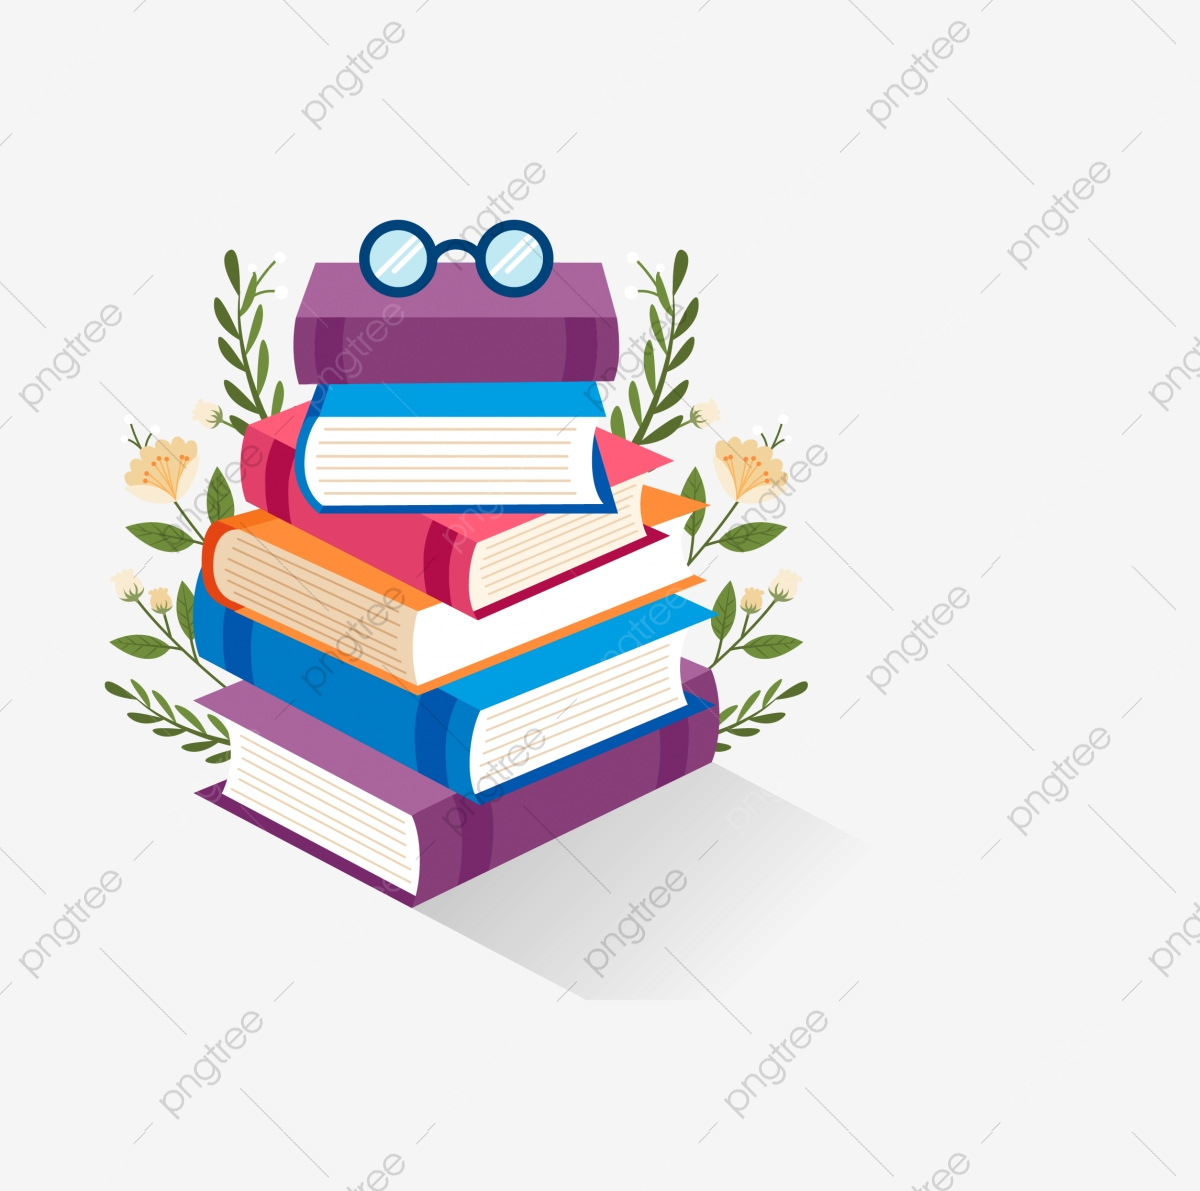 Library Books Are Stacked, Library Clipart, Library, Books PNG.